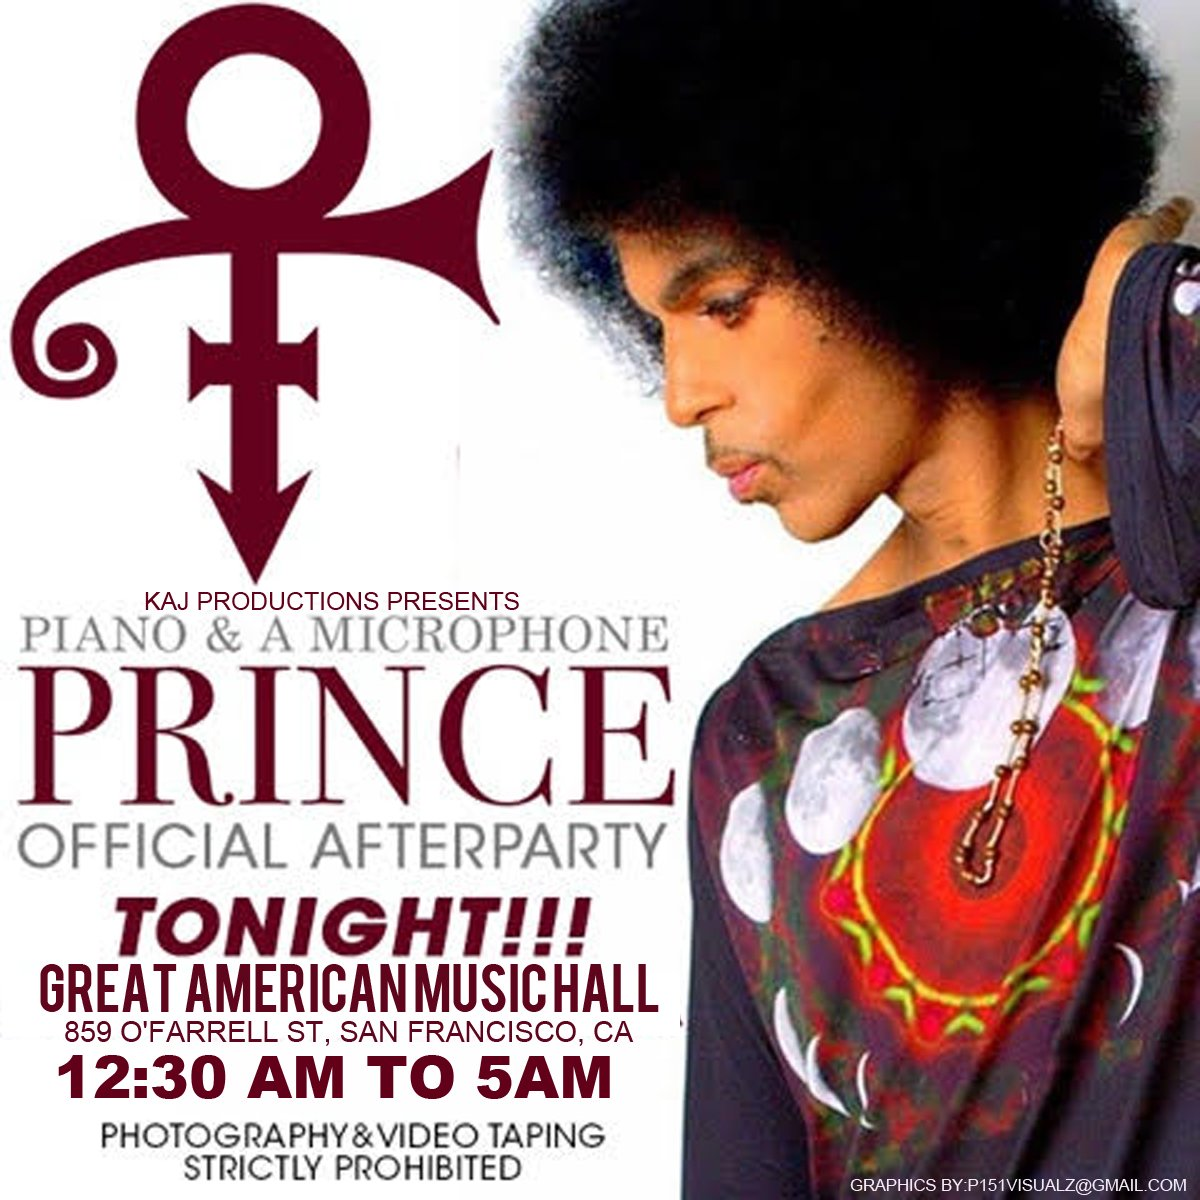 .@Prince3EG's after-party is at GAMH! $50 at the box office this evening (no advance sales & no lining up b4 11!) https://t.co/b11xE4x2Sr